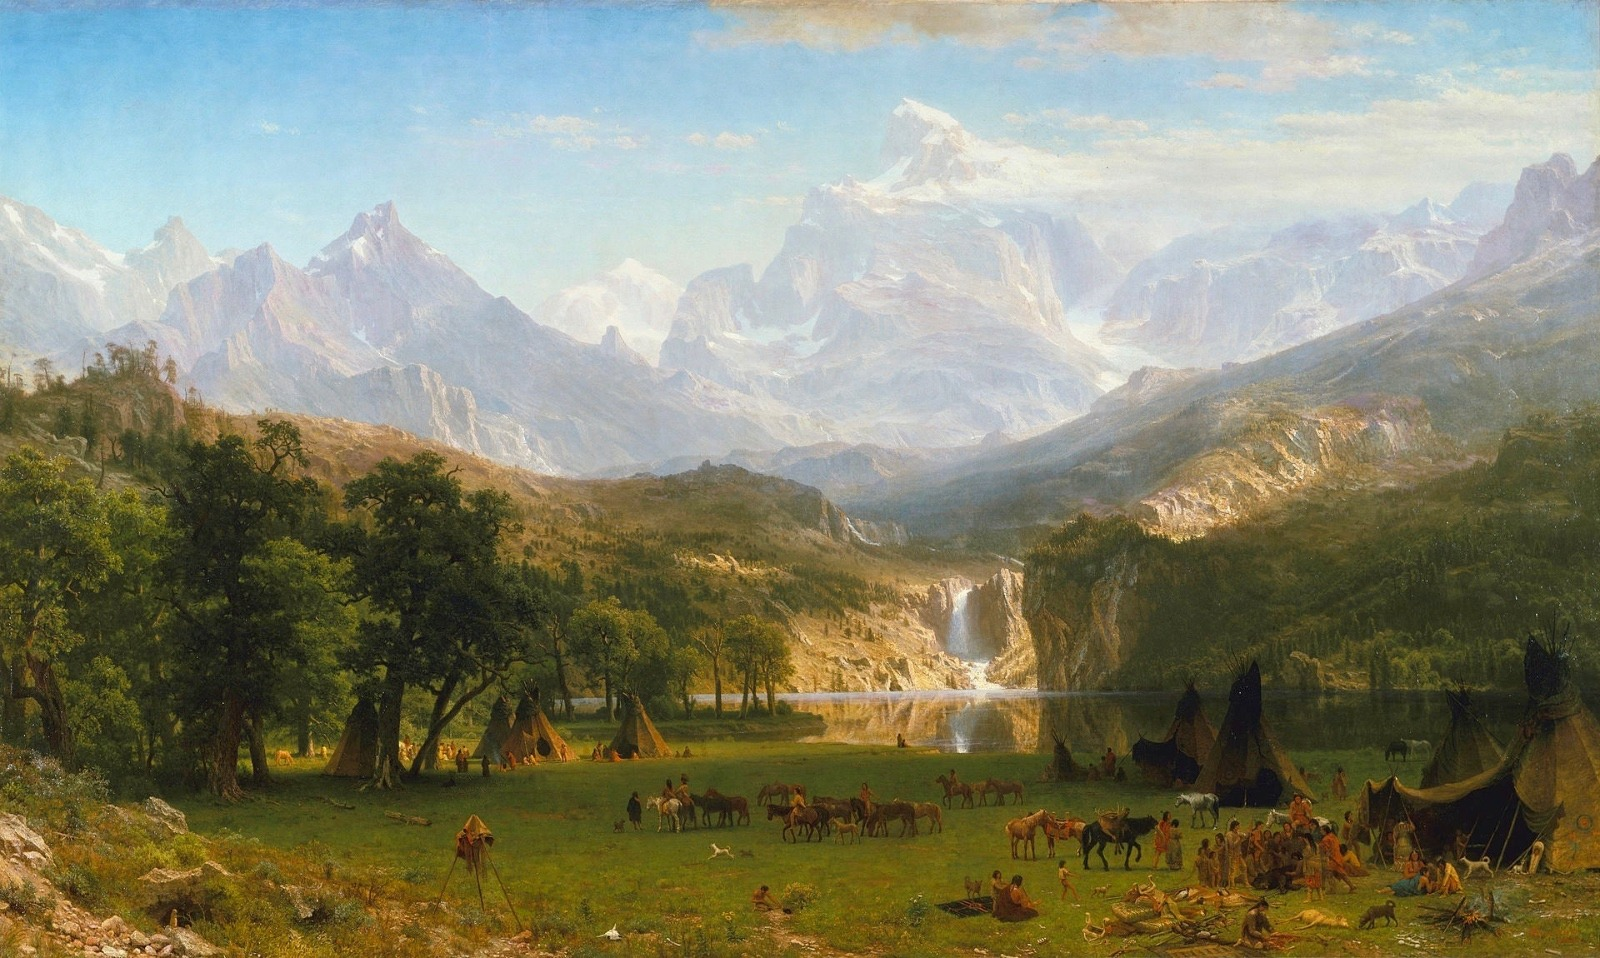 """The Rocky Mountains, Lander's Peak"" (1863) in Metropolitan Museum of Art, New York City.  This painting, completed while the Civil War was still raging and 27 years before Wyoming gained statehood, conveys the scene of a Shoshone encampment alongside the Wind River Range"